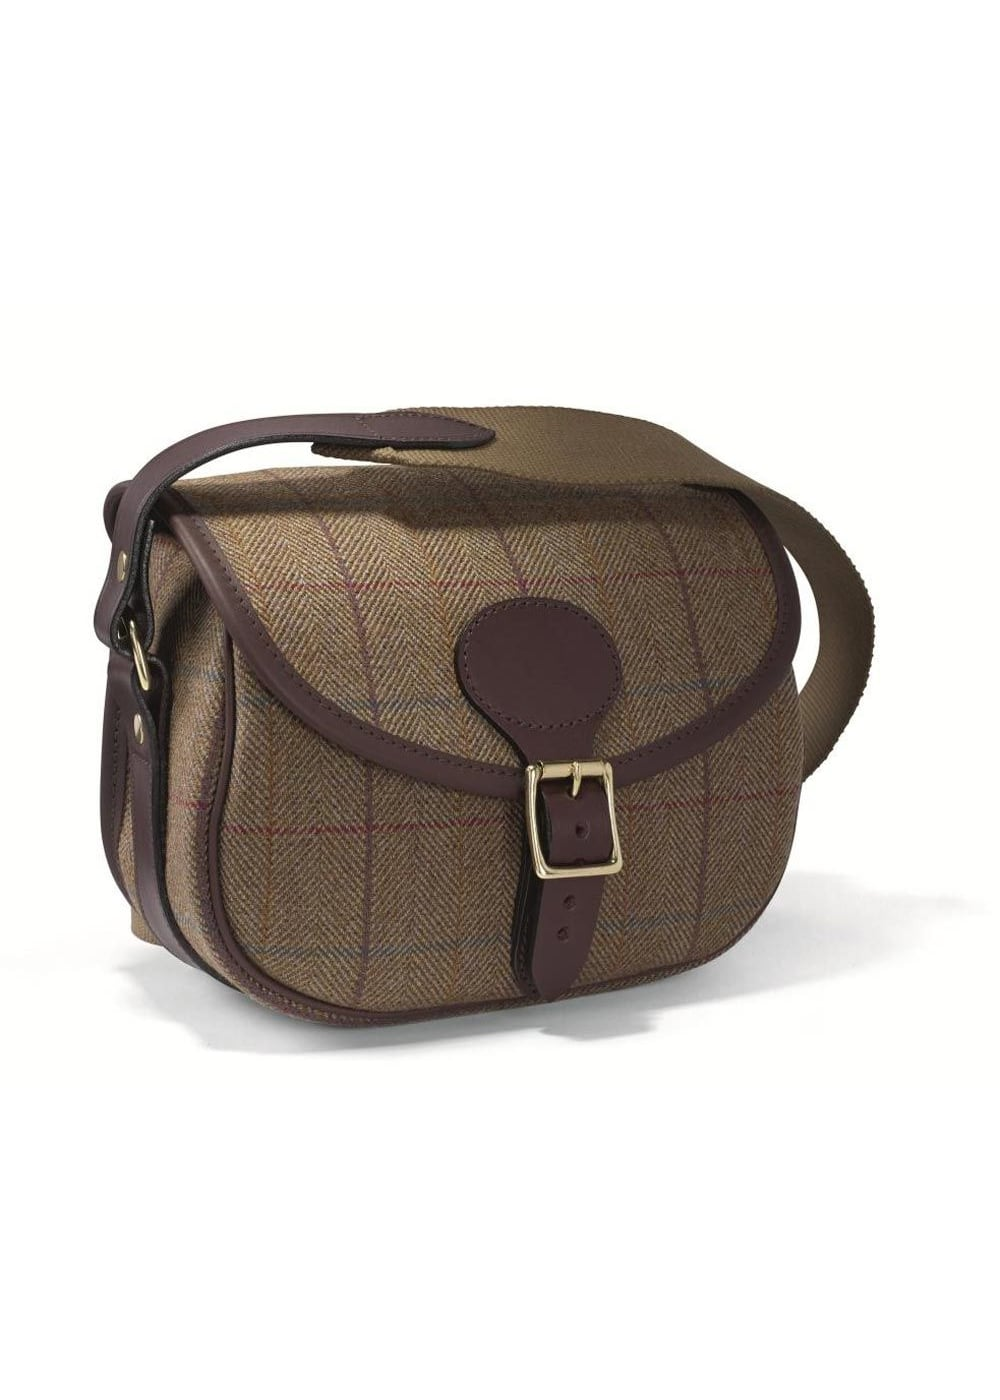 Croots Helmsley Tweed Cartridge Bag Large Image